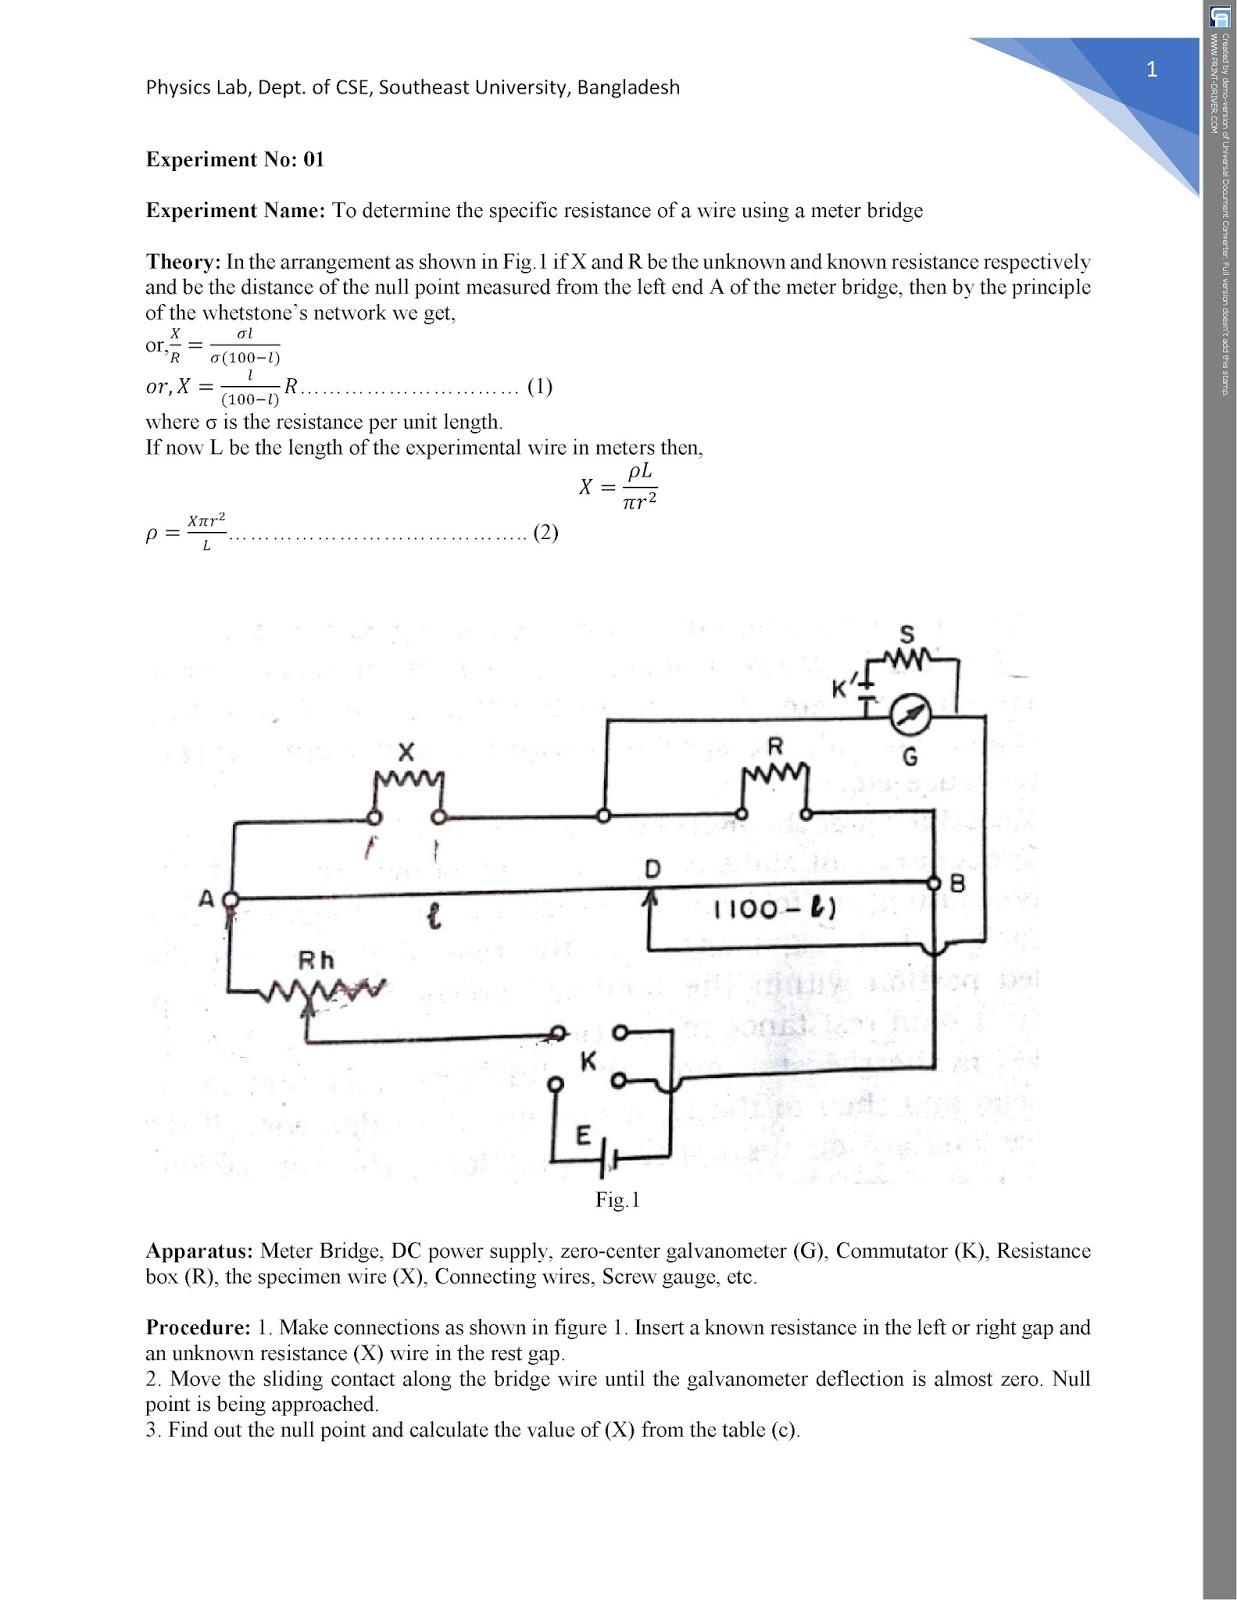 Expt.1: To determine the specific resistance of a wire using a meter bridge